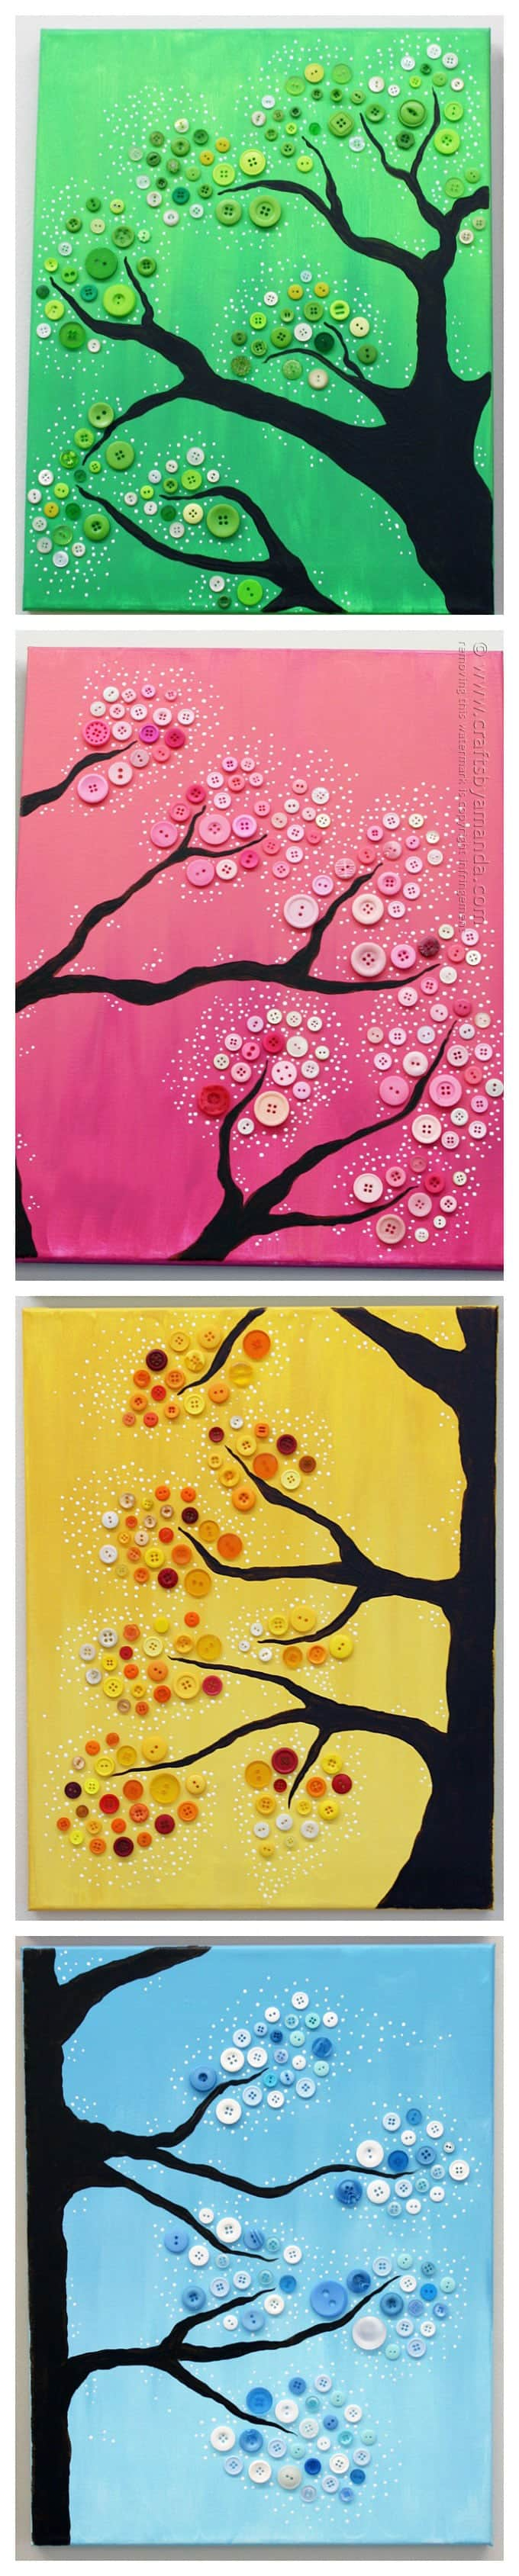 4 Seasons Button Tree Wall Art in vibrant colors